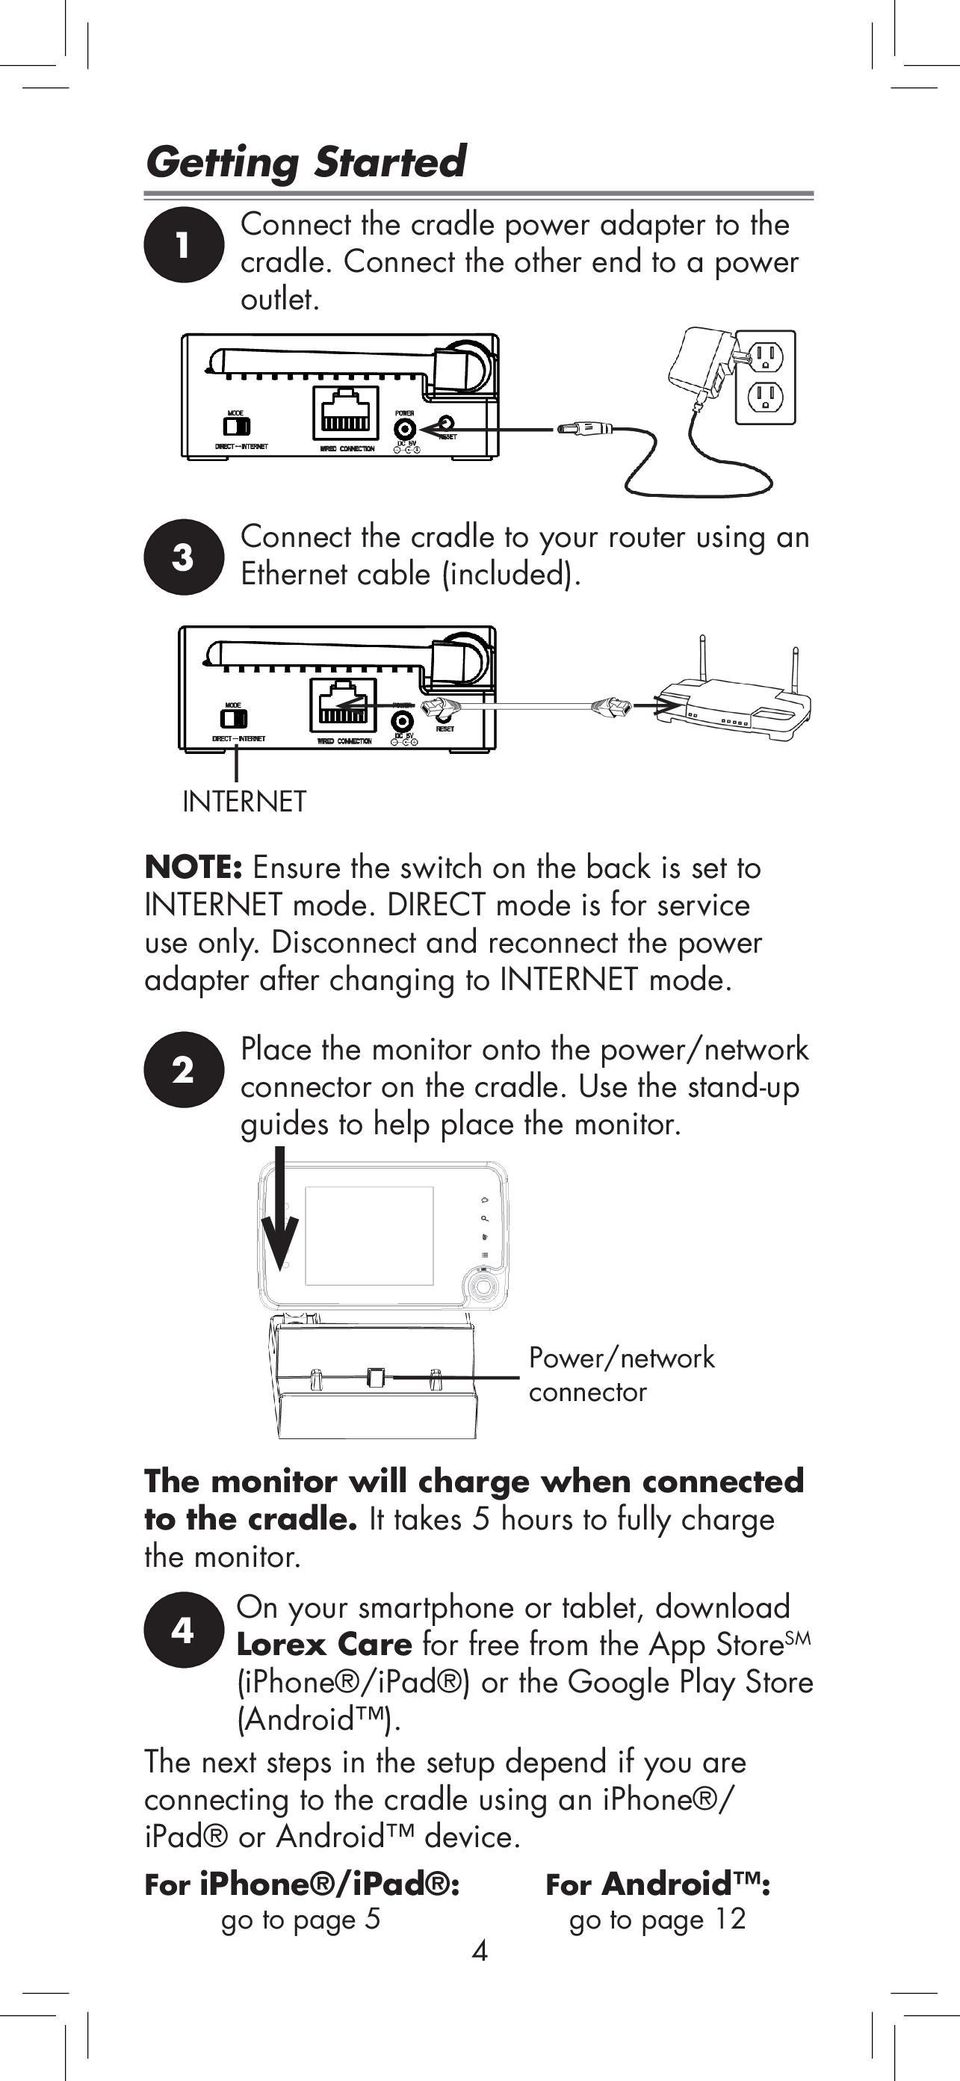 2 Place the monitor onto the power/network connector on the cradle. Use the stand-up guides to help place the monitor. Power/network connector The monitor will charge when connected to the cradle.